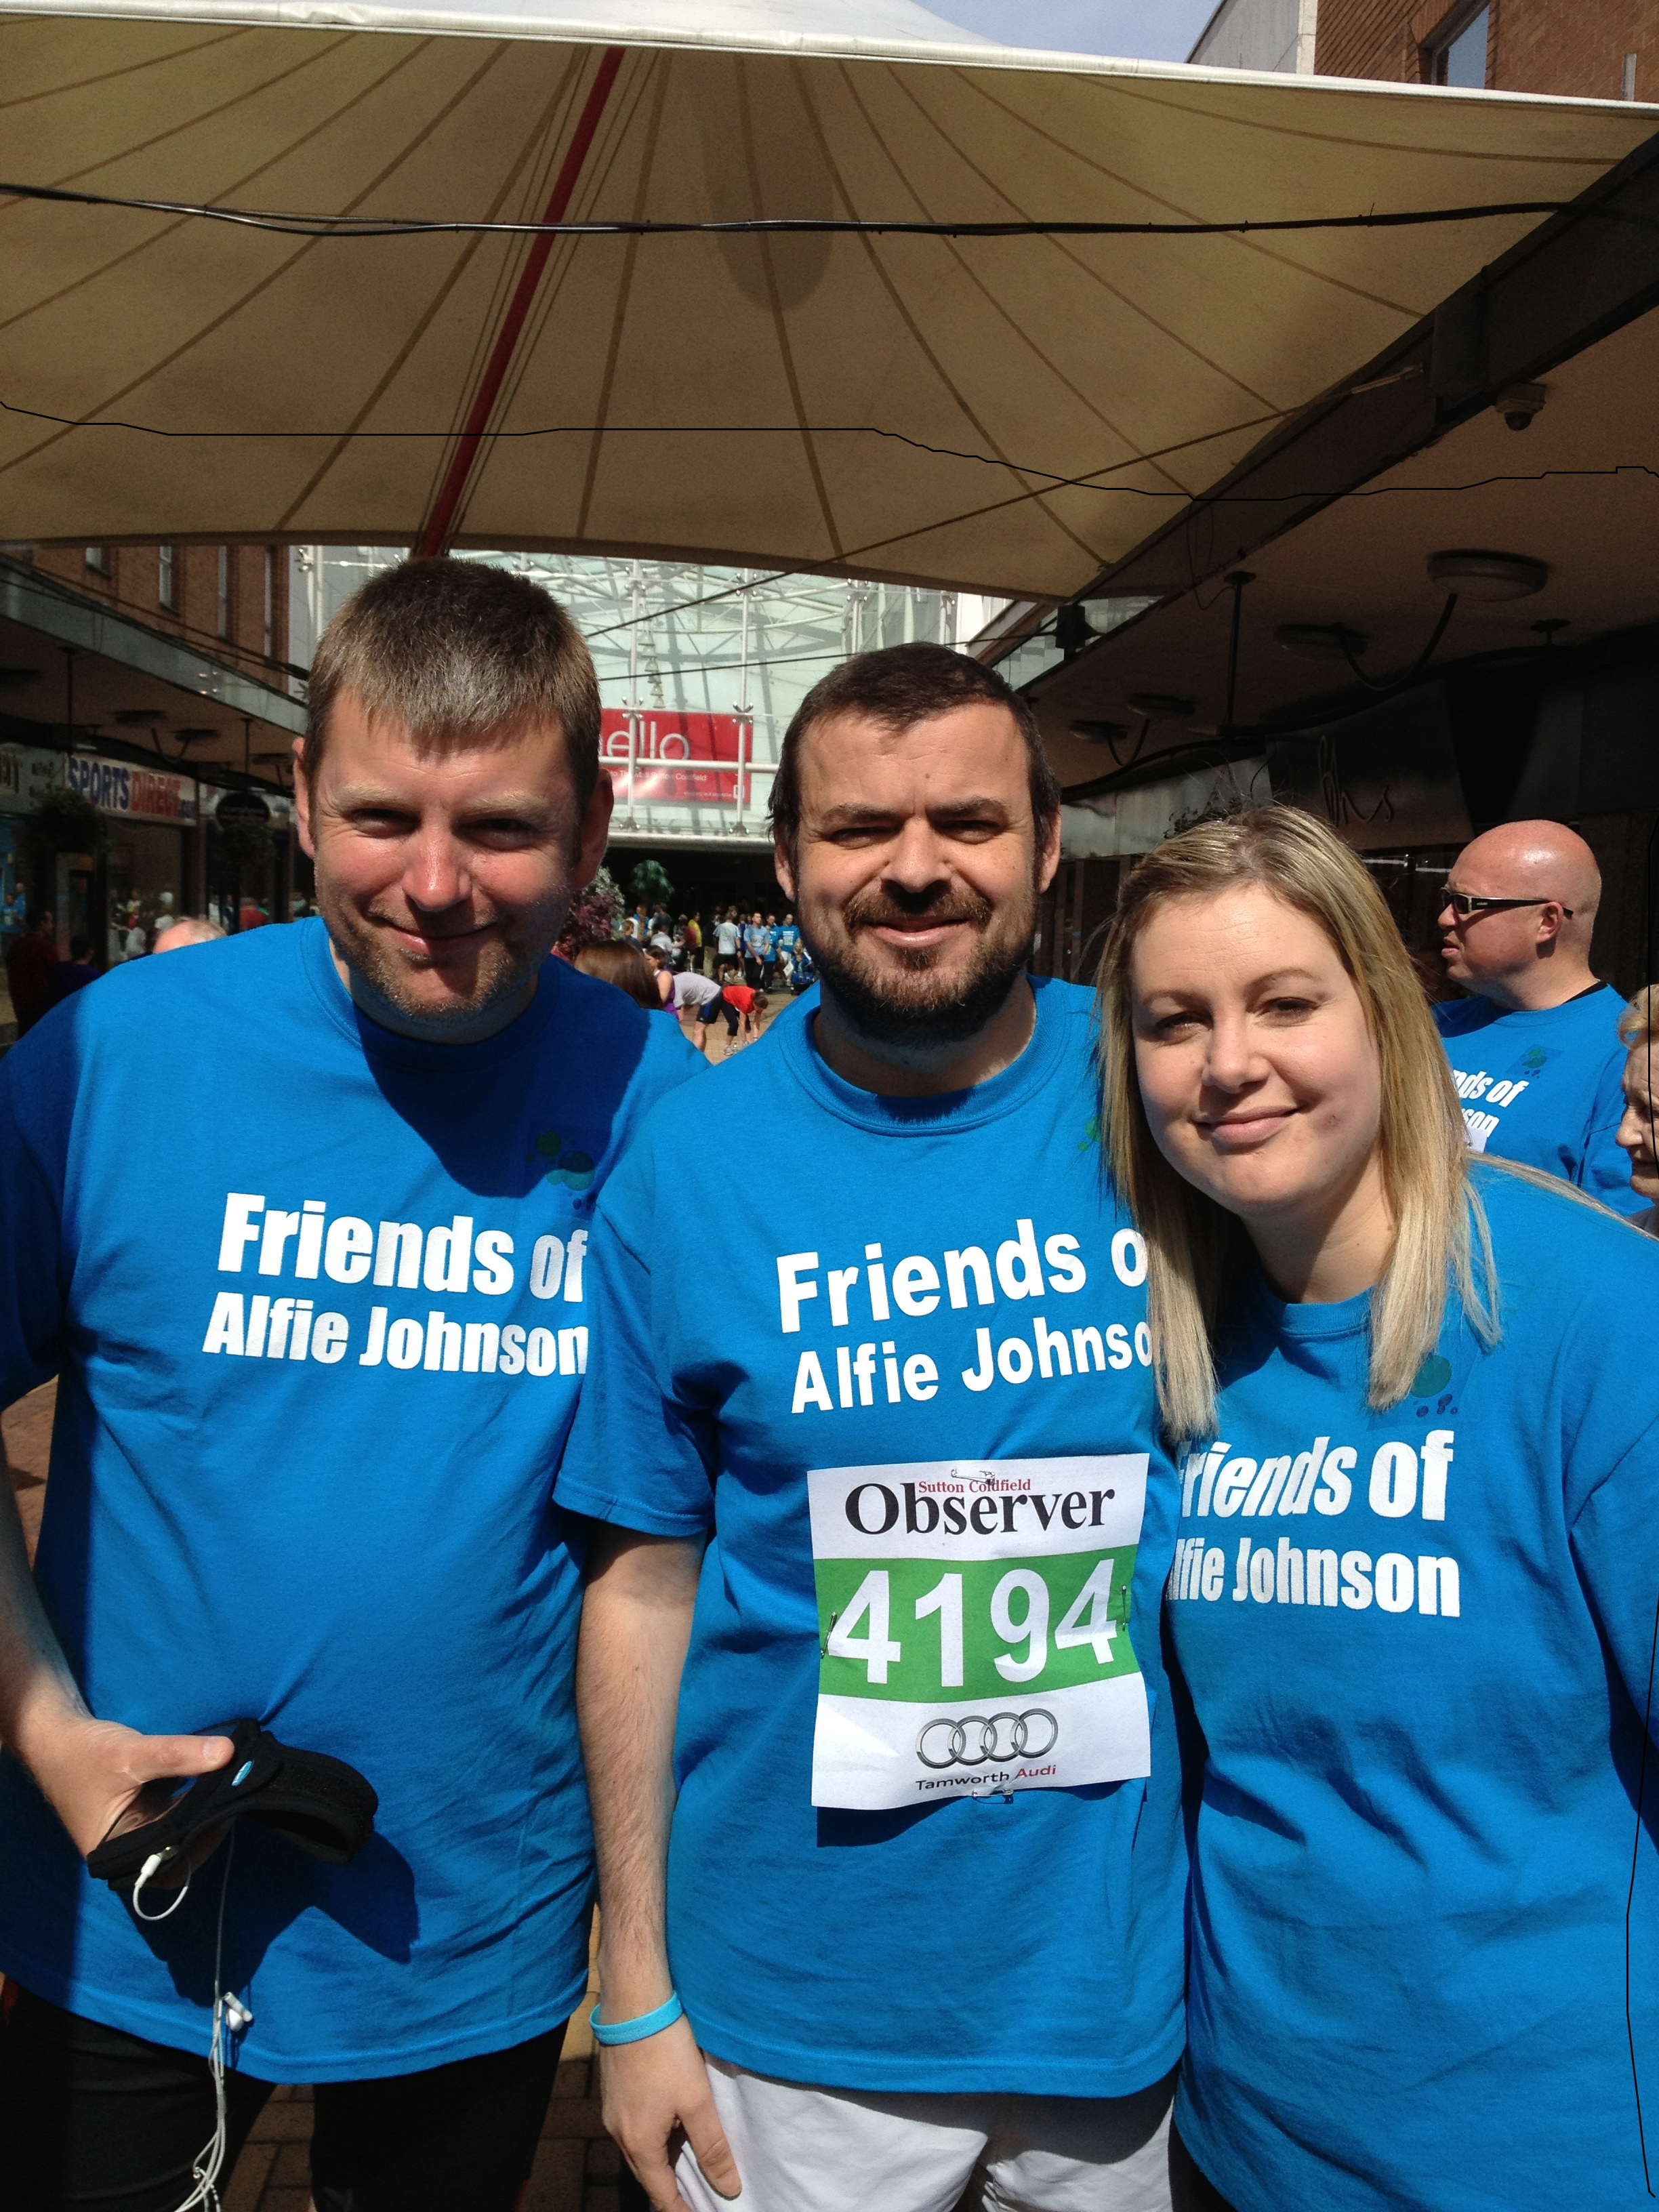 Andrew, Craig and Suzanne running for Lewis Smith & Co. to raise money for The Friends of Alfie Johnson